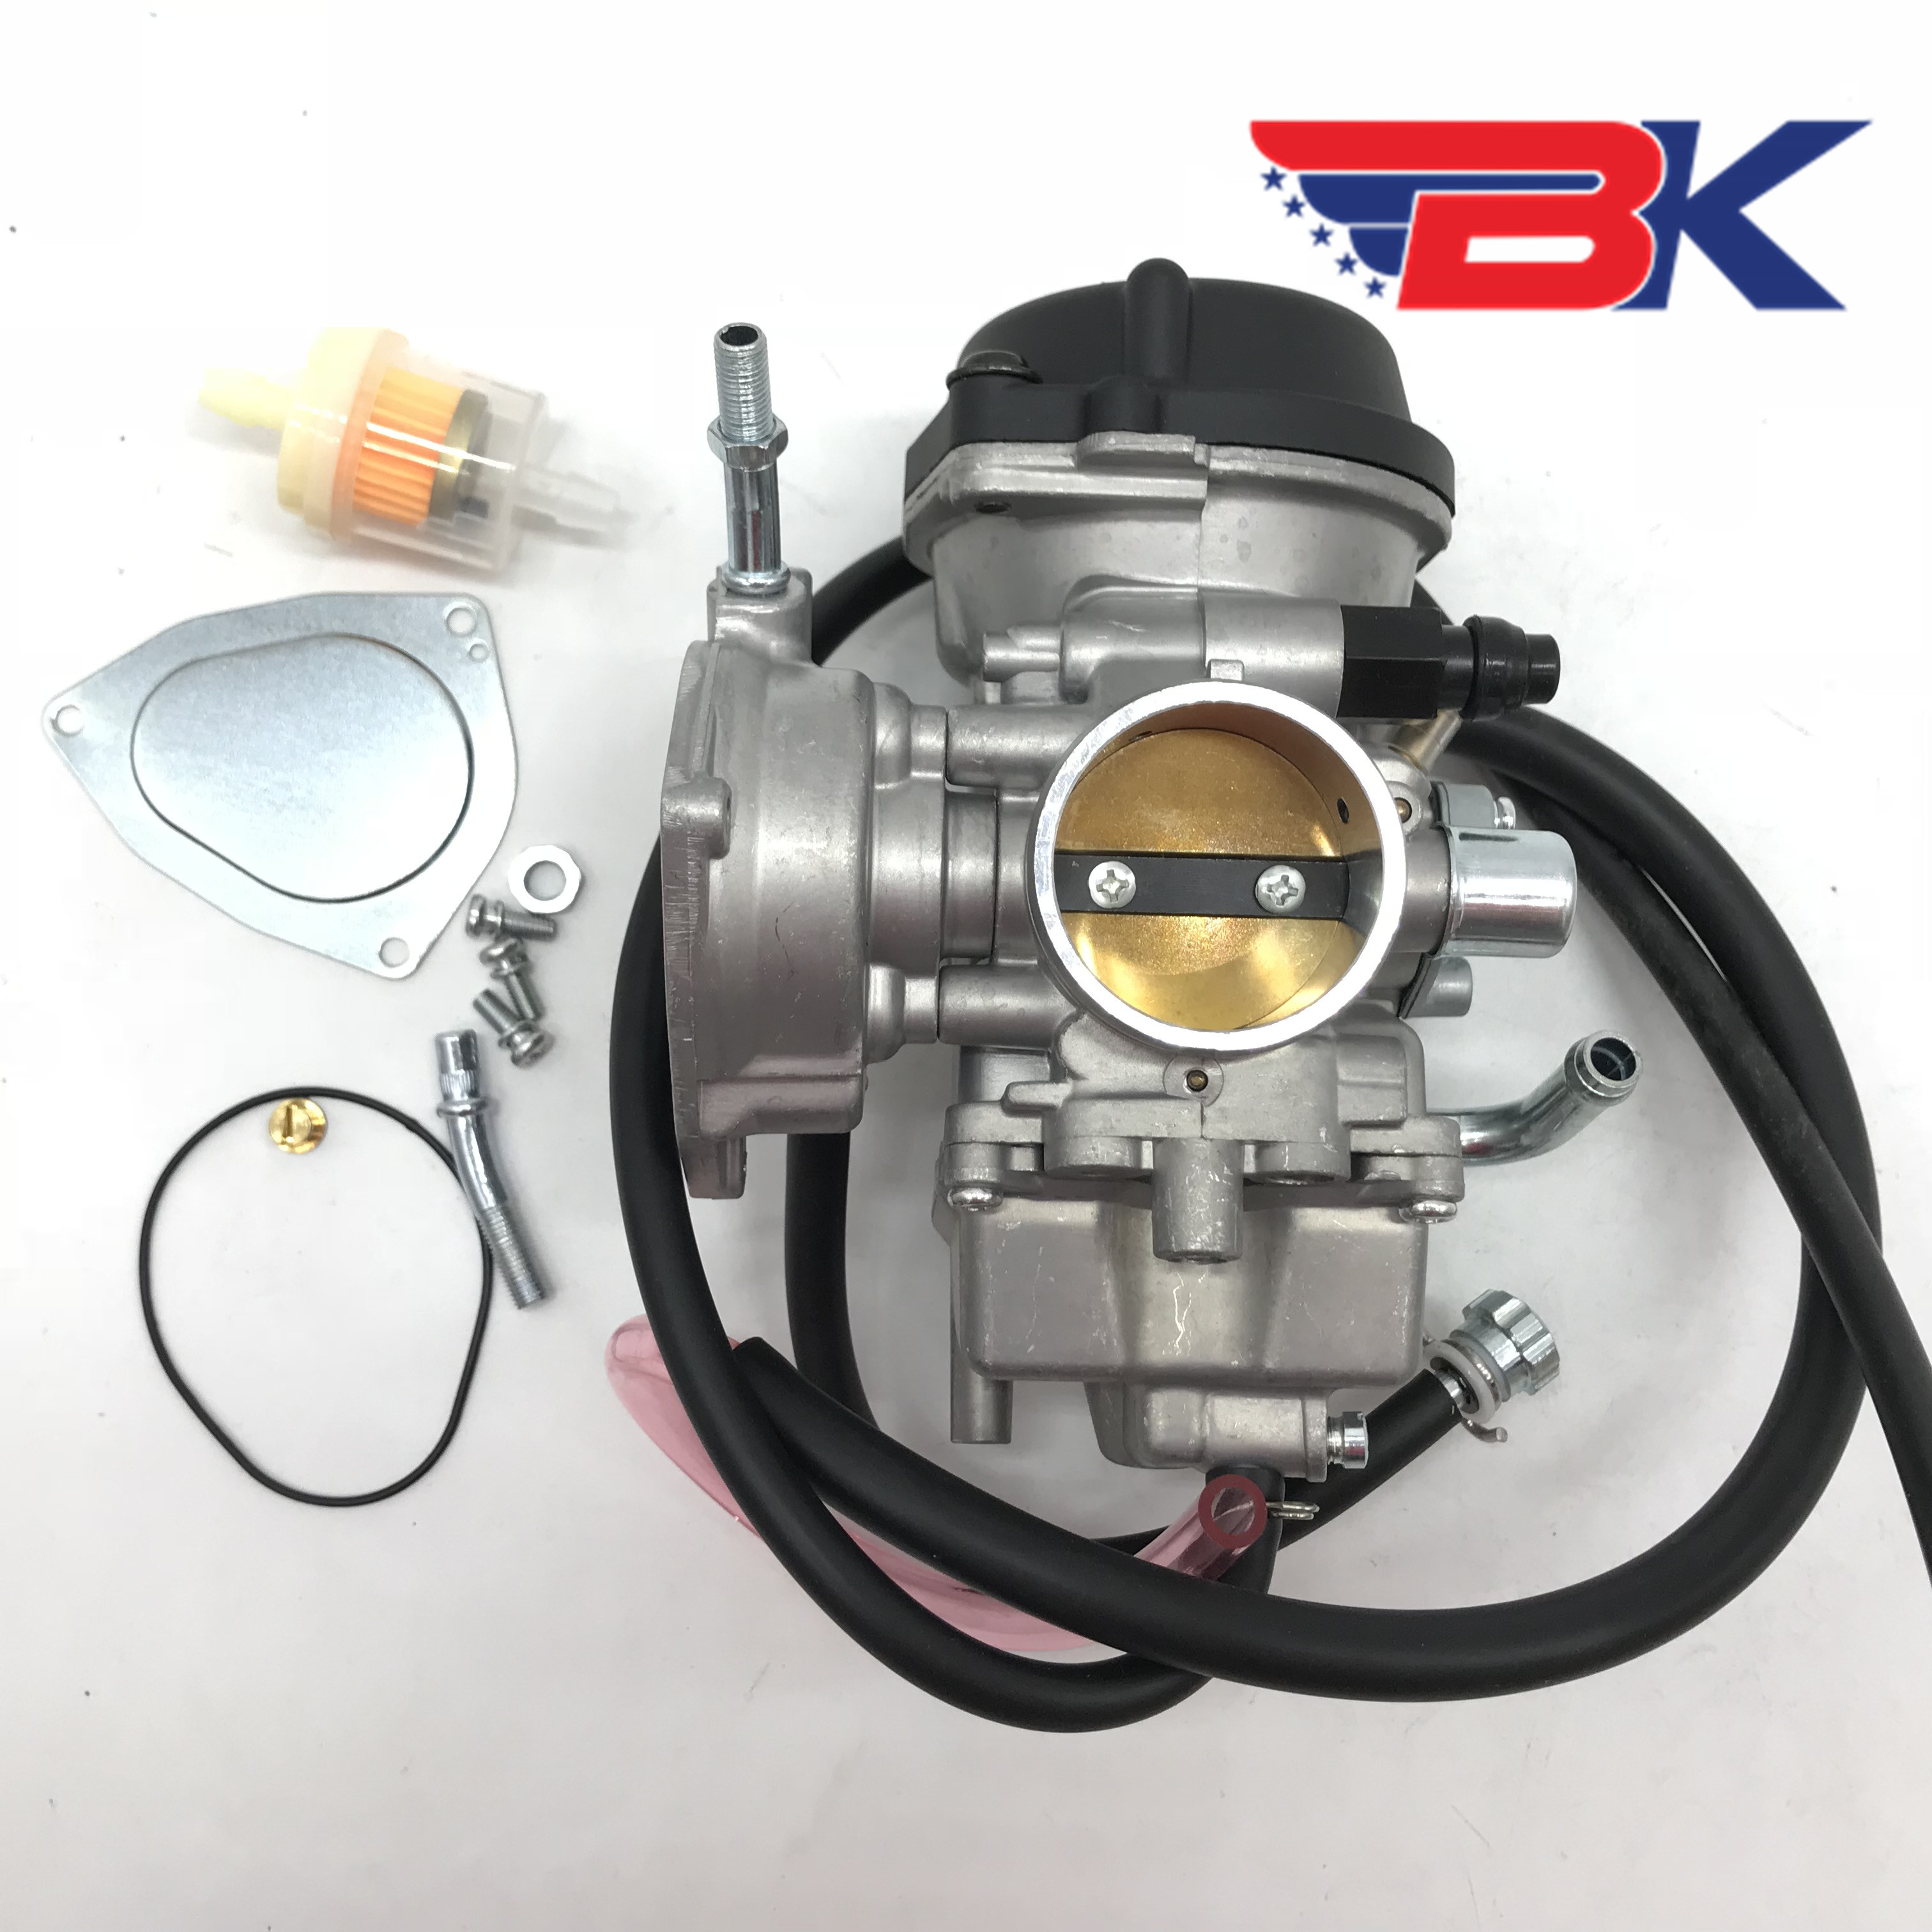 Carburetor Carb Fit CFMOTO CF500 CF188 CF MOTO 300cc 500cc ATV Quad UTV CF188-100000 0180-100000 Carb